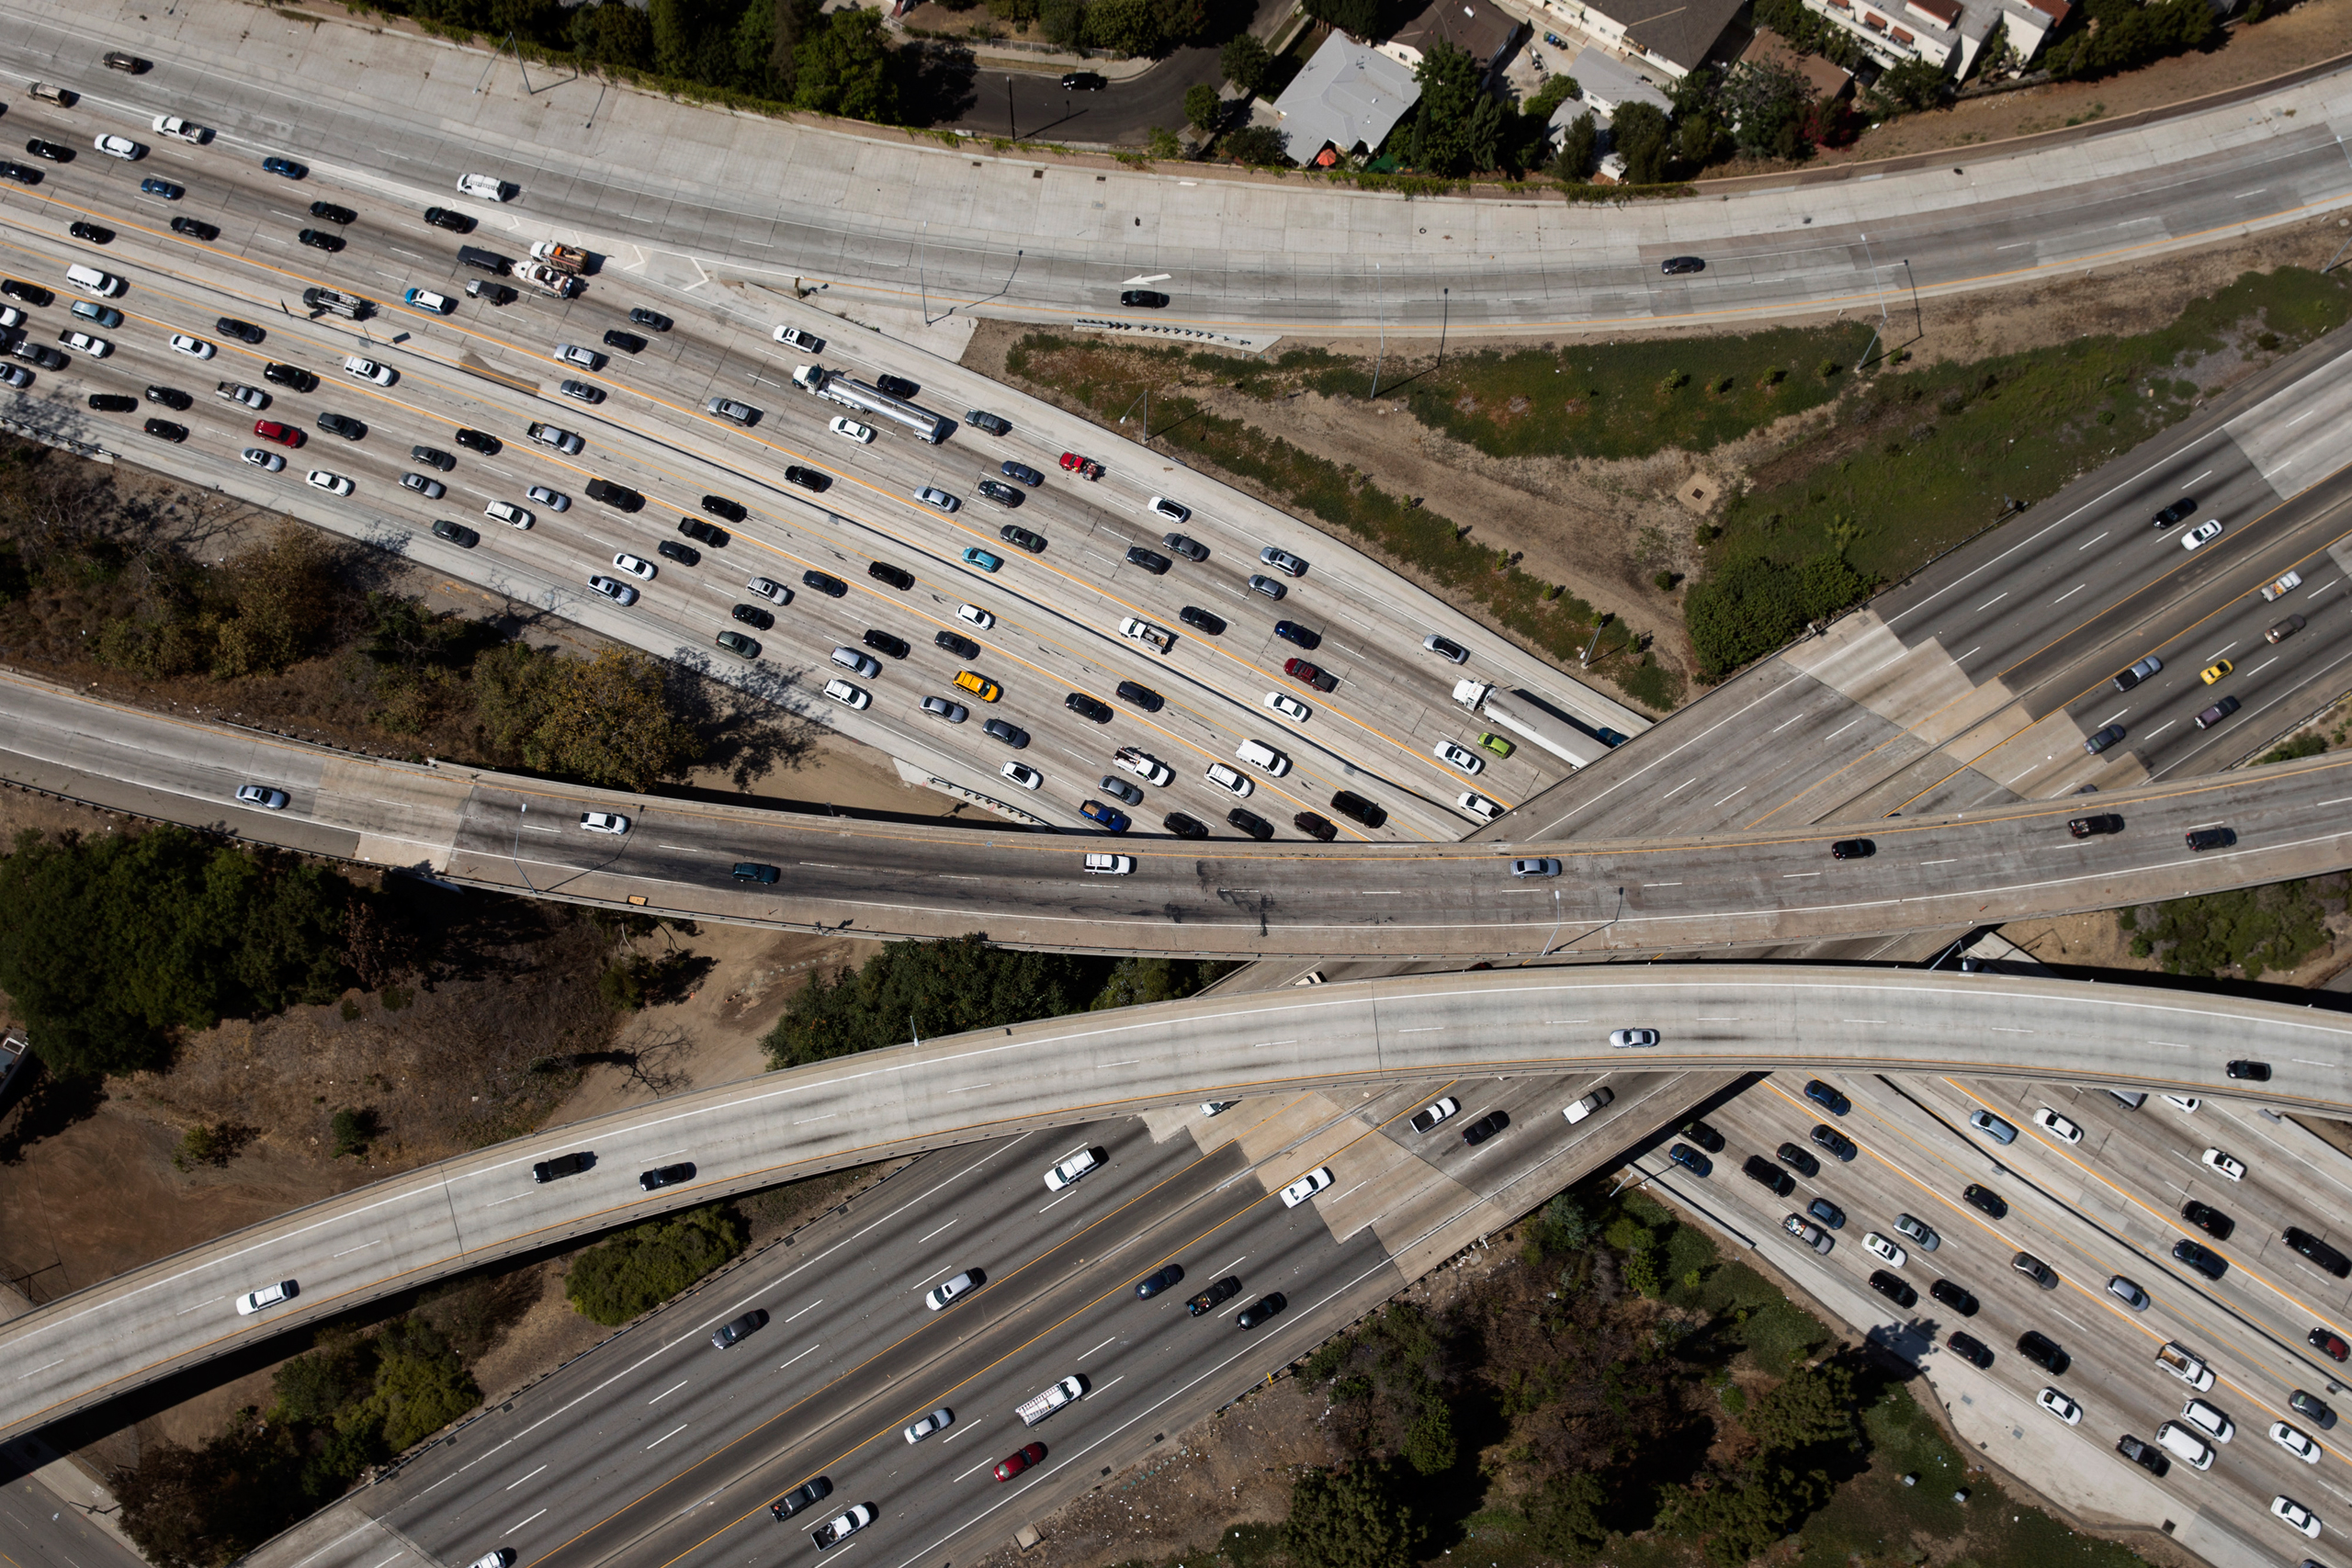 Traffic congestion from lost productivity, energy use and wear on vehicles costs $160 billion annually